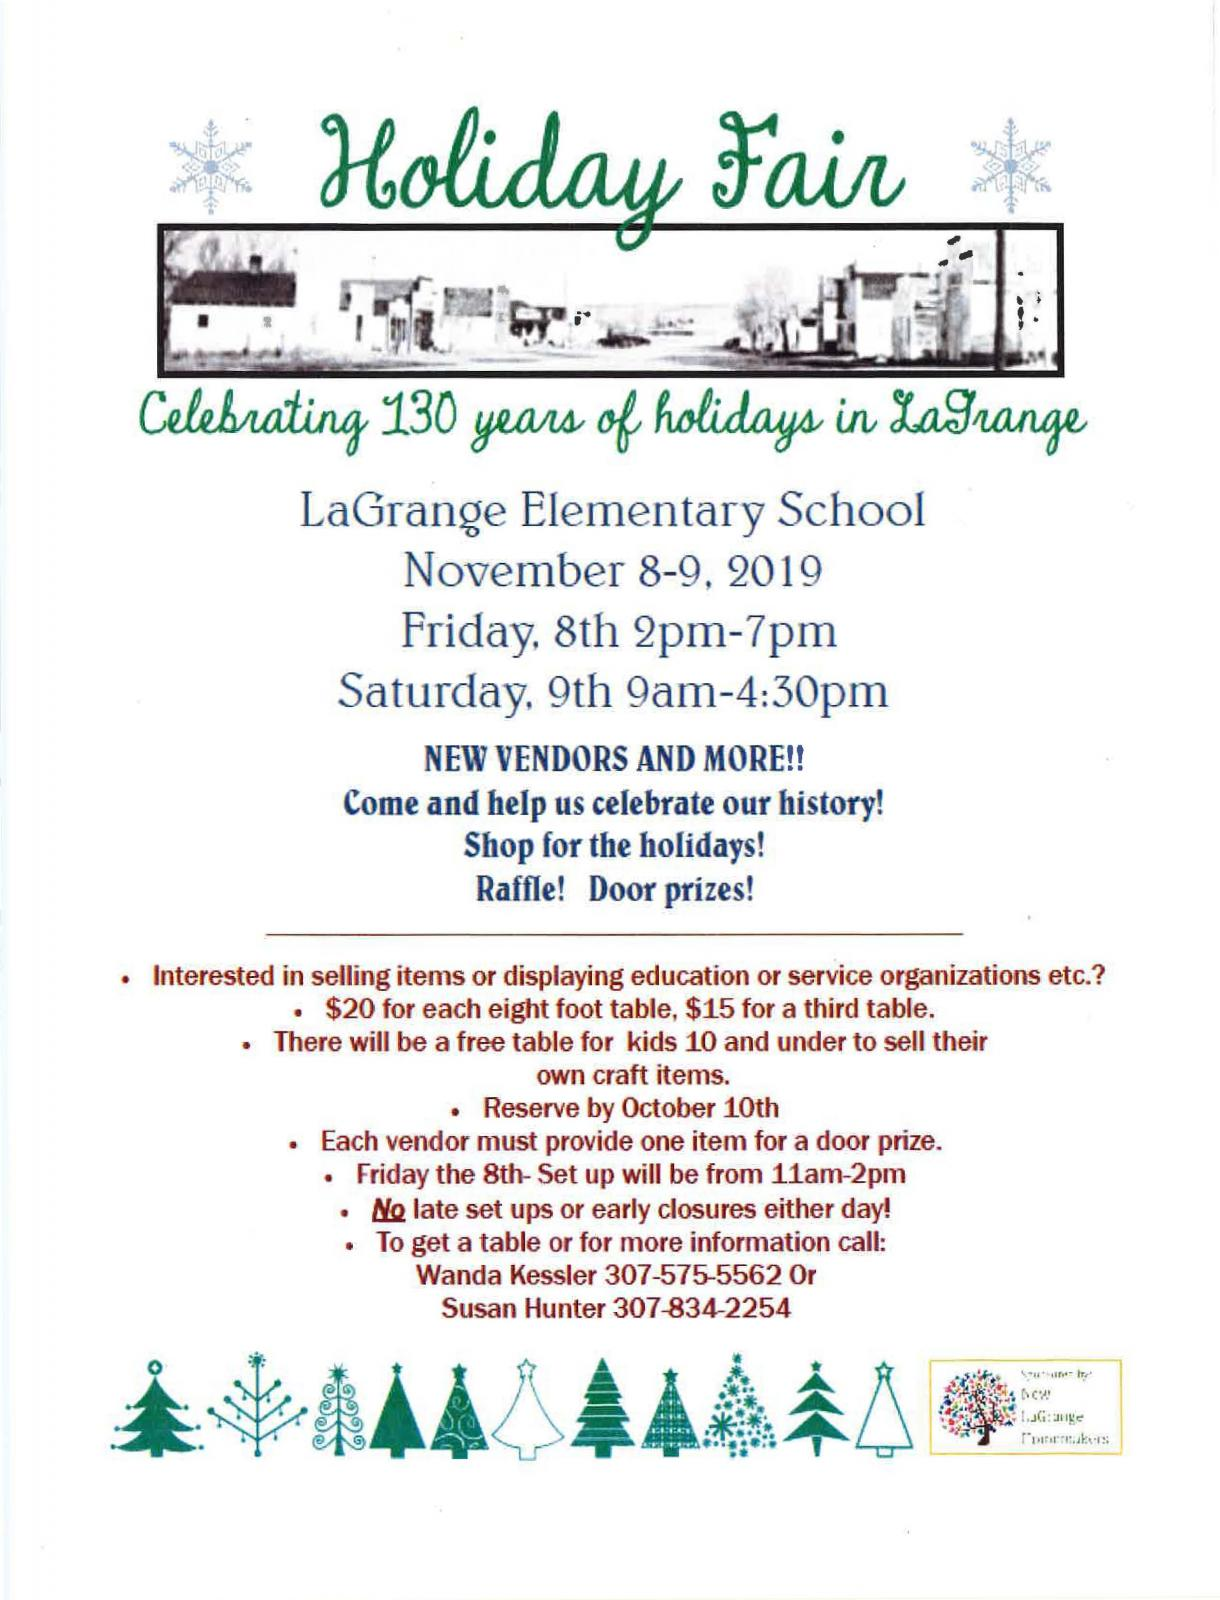 Event Promo Photo For Holiday Fair Celebrating 130 years in LaGrange